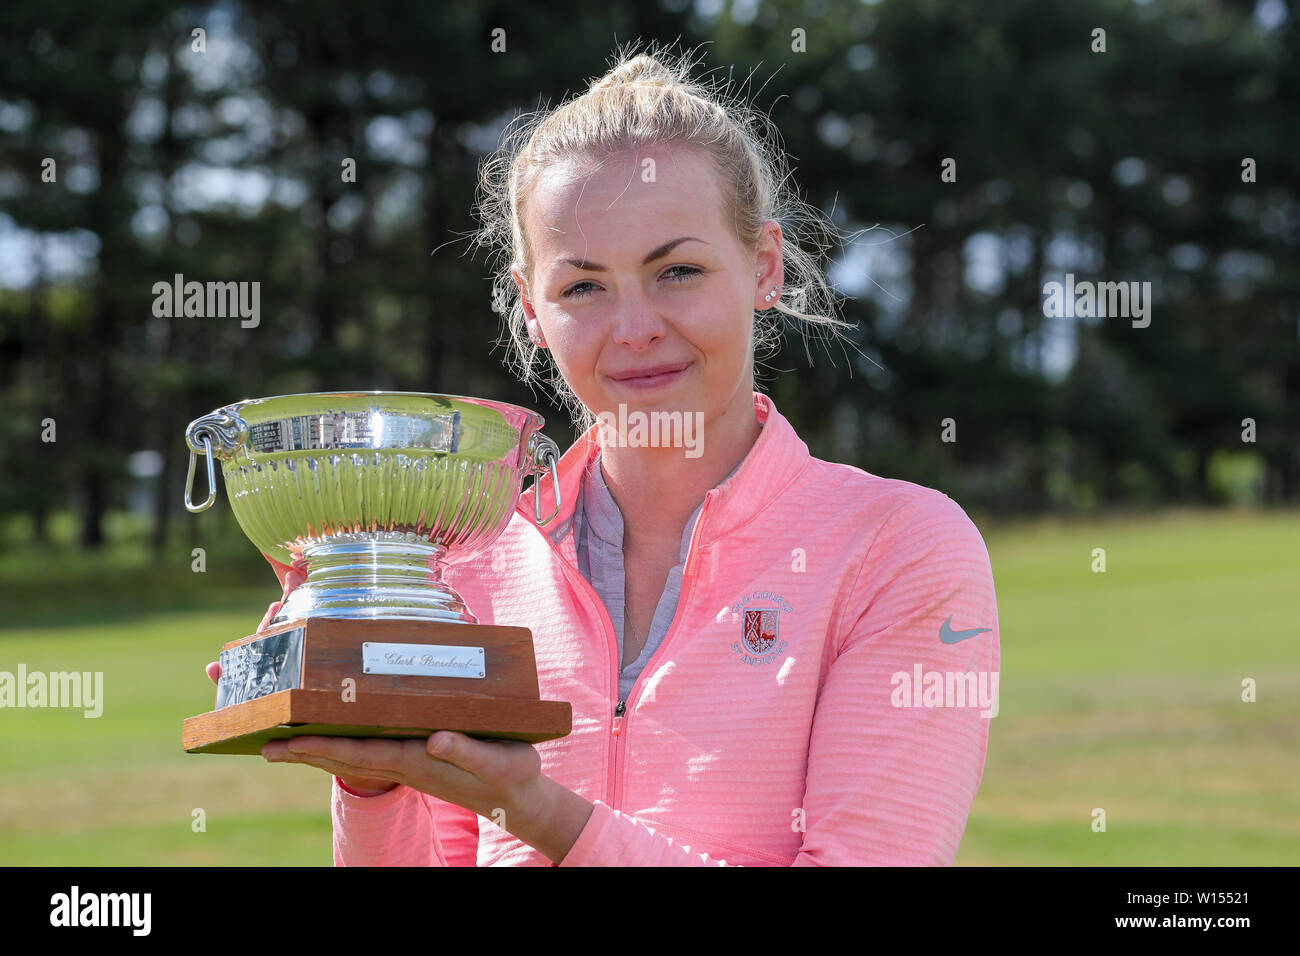 Troon, Scotland, UK. 30th June 2019. One the final round of the Scottish Women's Amateur Championship Clark Rosebowl the Championship Cup was won by KIMBERLEY BEVERIDGE from Aboyne Golf Club and the Silver Plate was won by MEGAN ROBB from Banchory Golf Club.Picture of MEGAN ROBB with the trophy Credit: Findlay/Alamy Live News - Stock Image